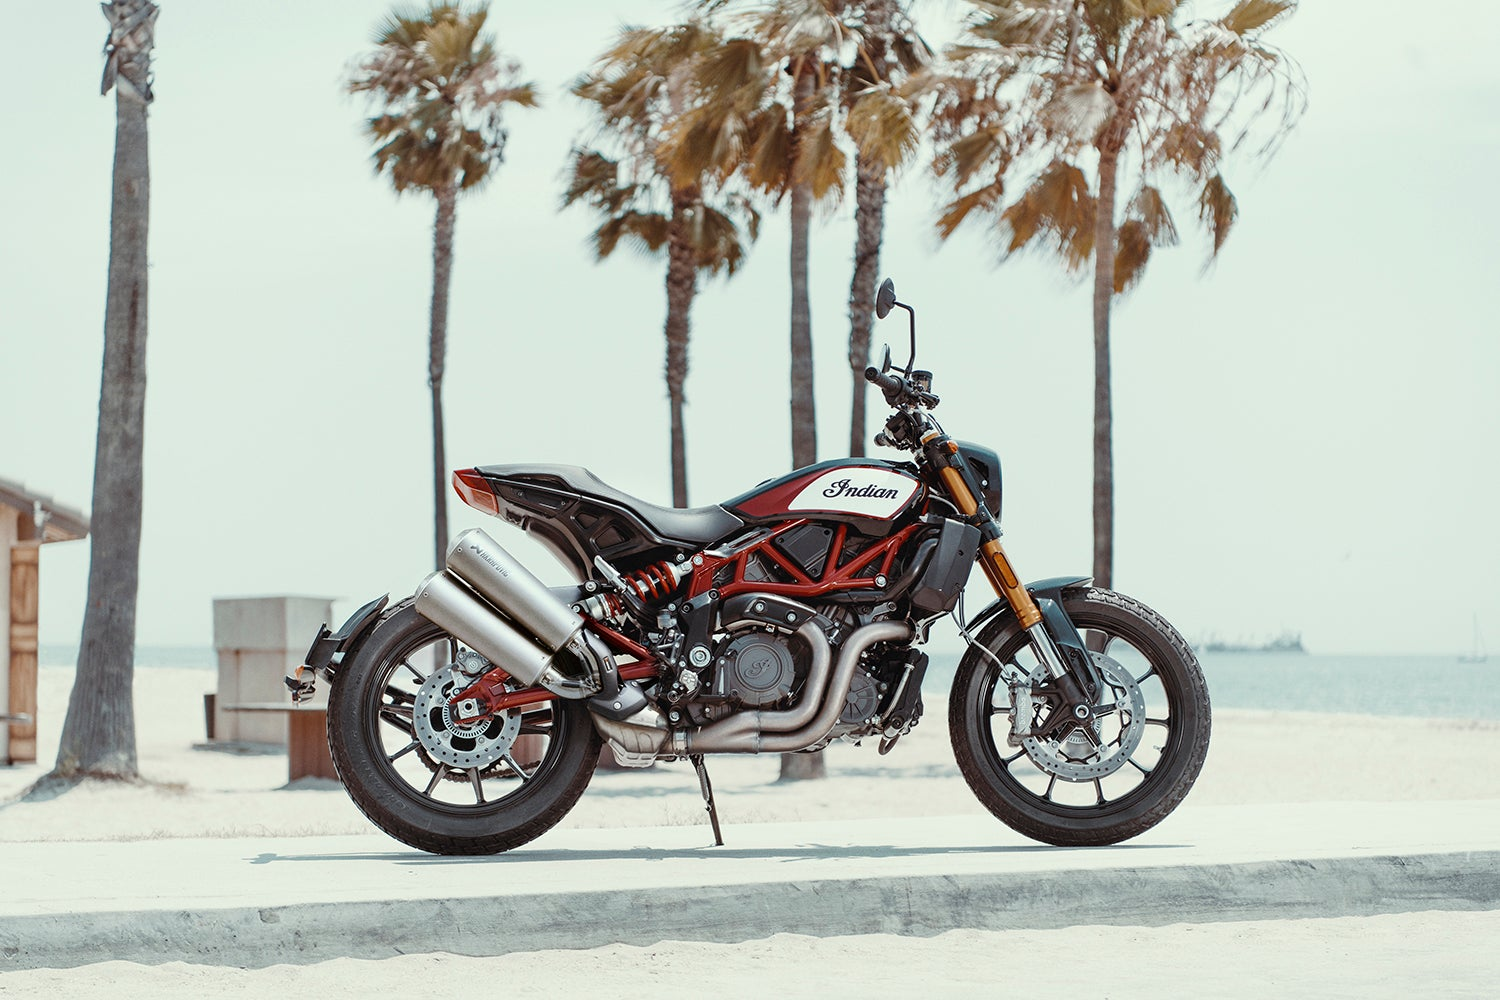 Indian's FTR 1200 S motorcycle is everything a modern sport bike should be